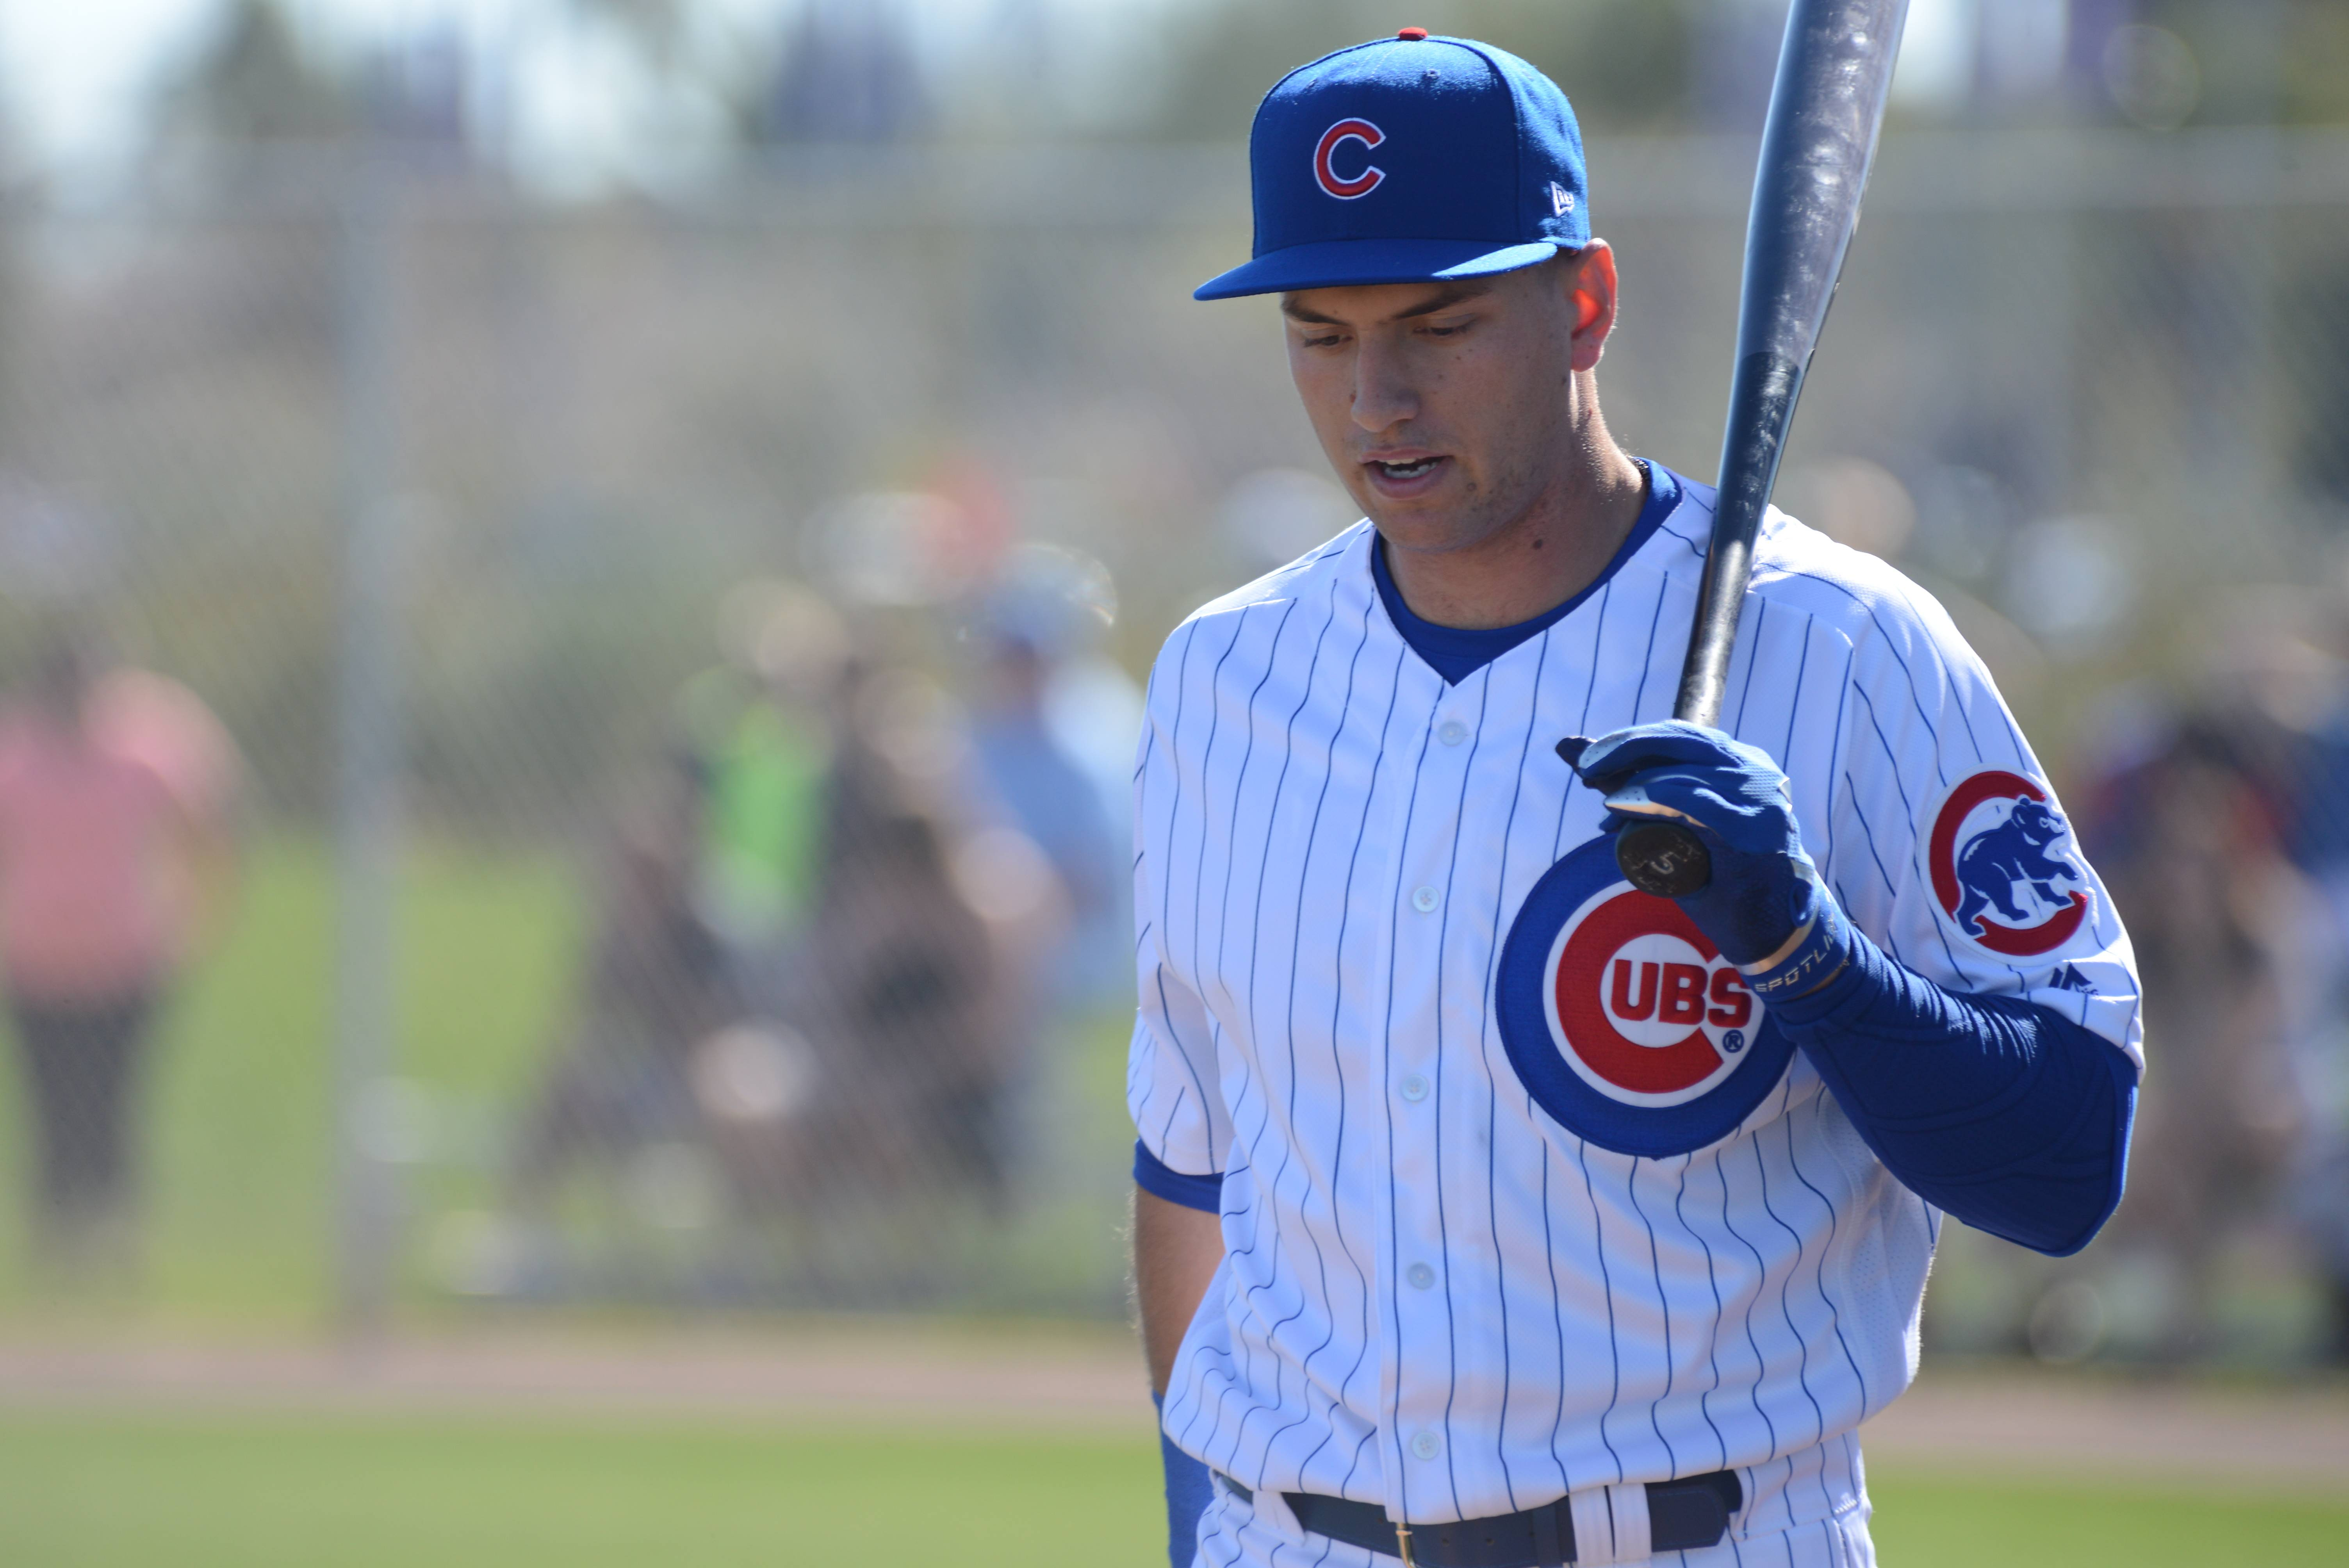 Cubs' Almora gifted with abundance of baseball sense